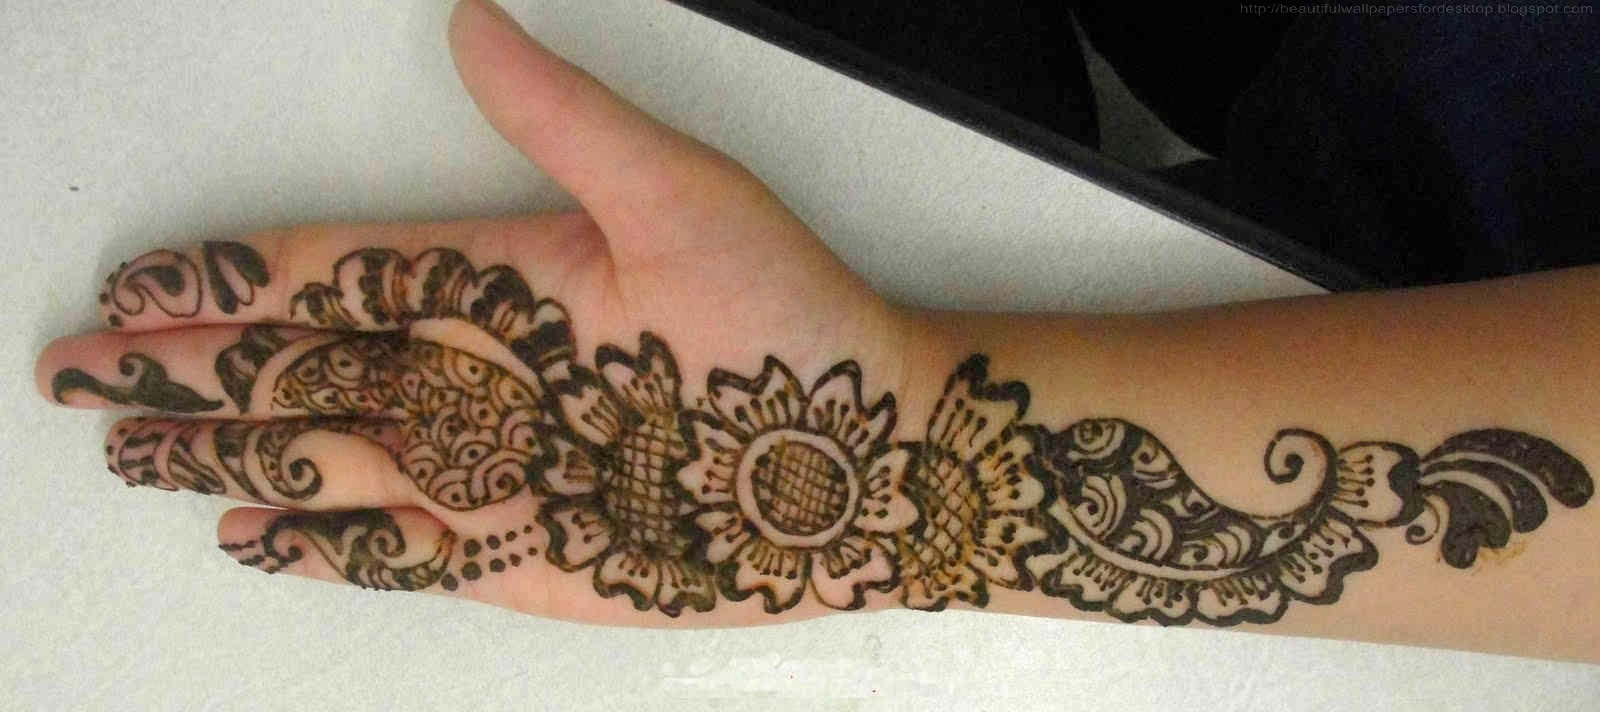 29 Creative Henna Designs Wallpaper | makedes.com